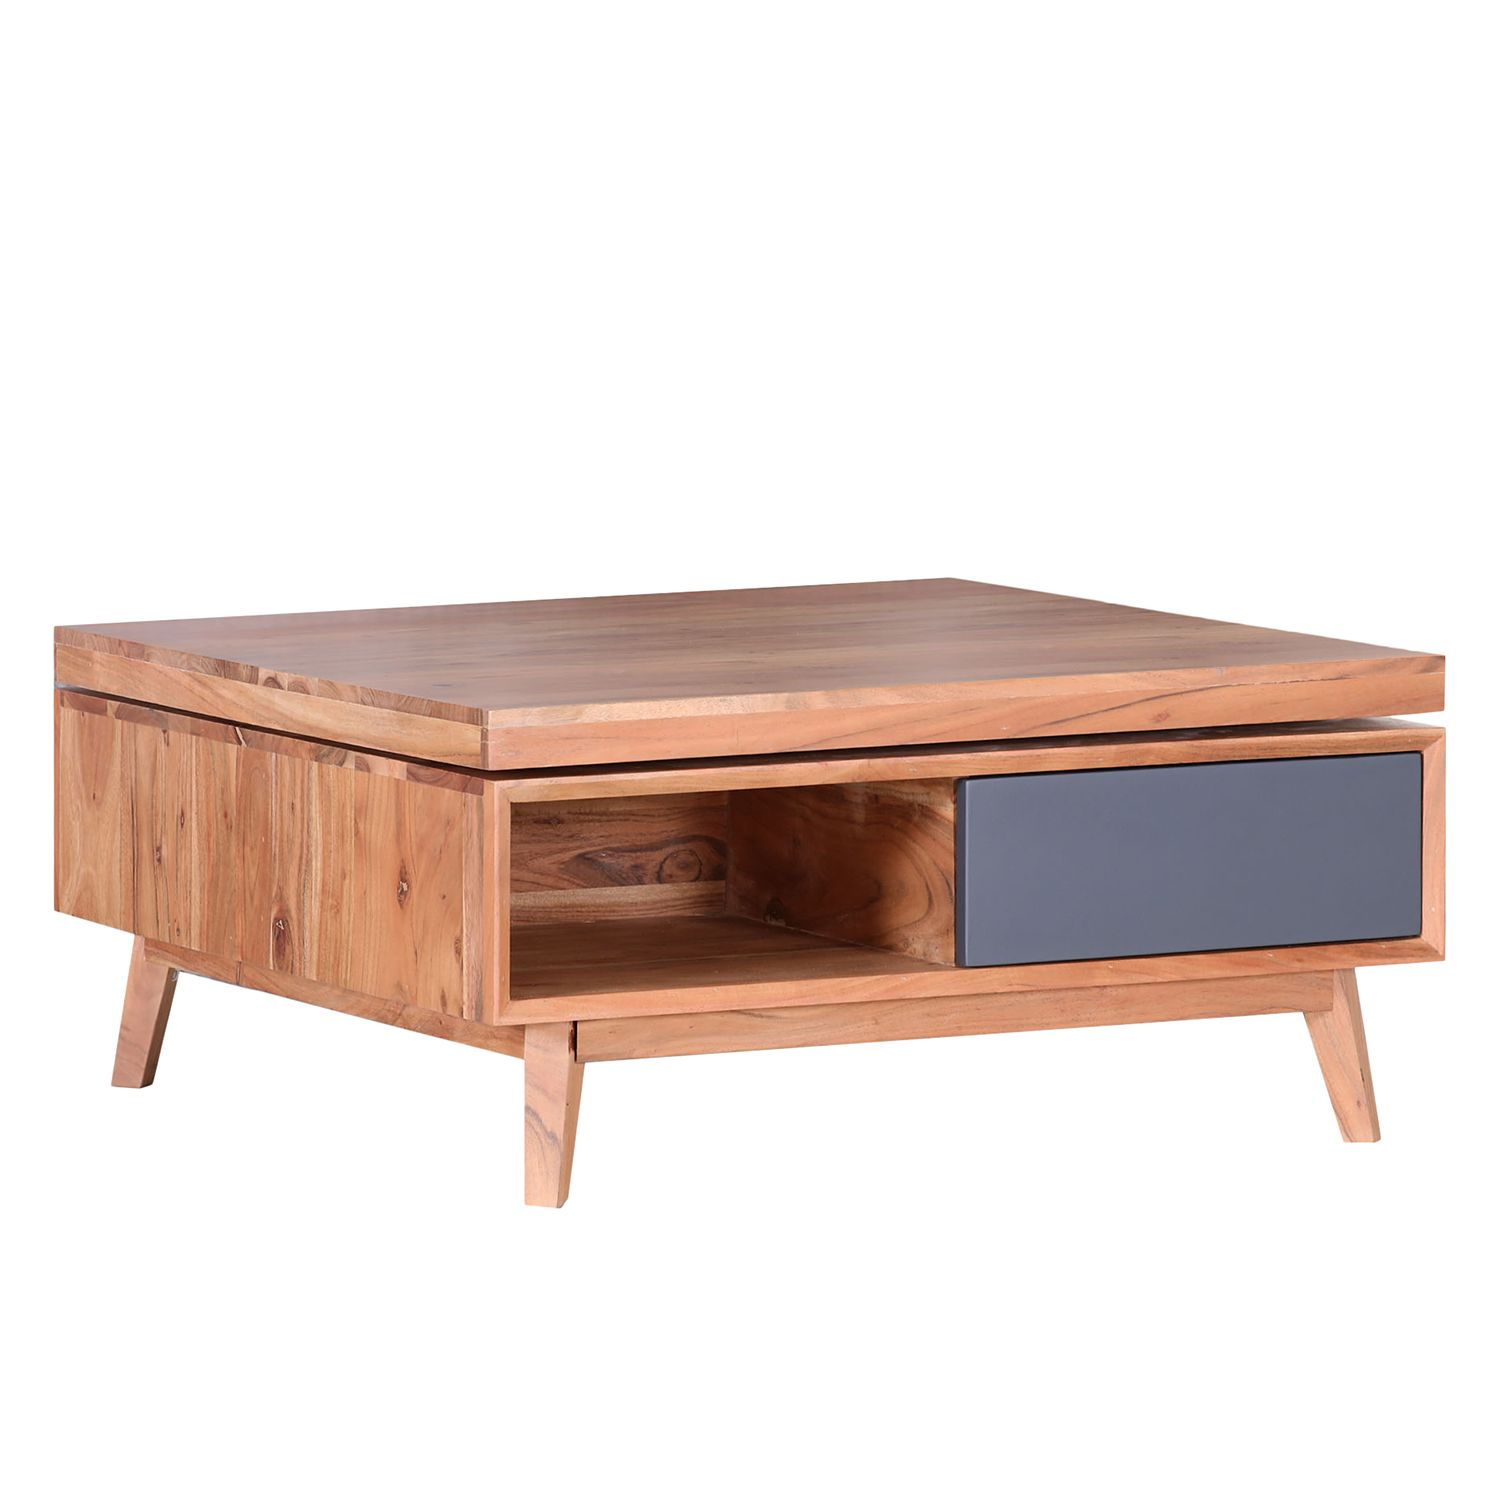 Table basse Kadena